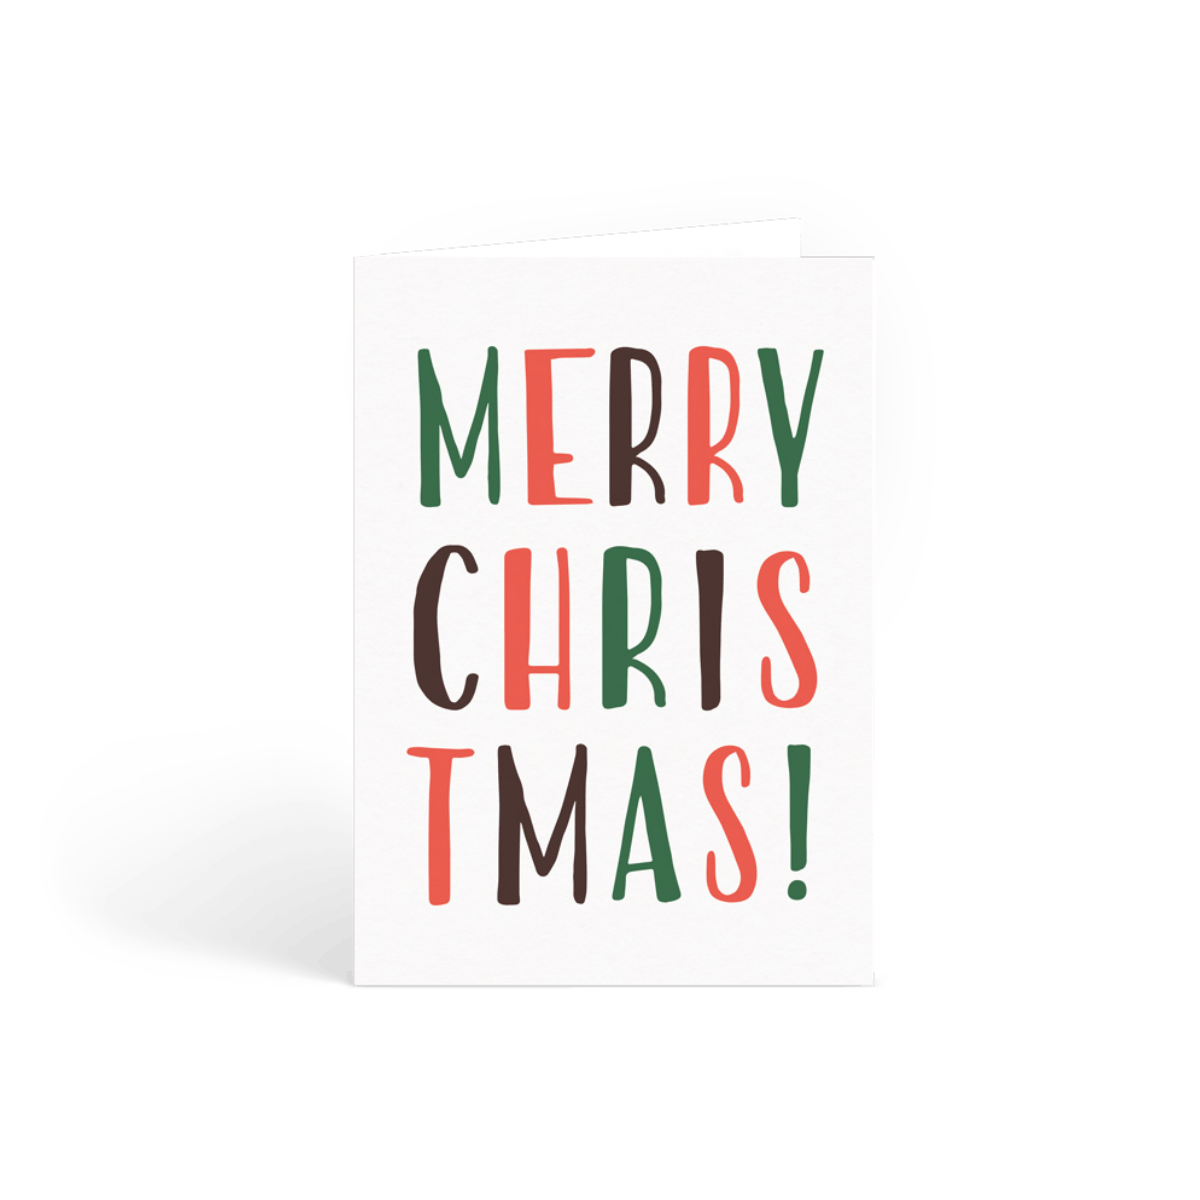 Https%3a%2f%2fwww.papier.com%2fproduct image%2f23696%2f2%2fchristmas lettering 5943 front 1542371447.png?ixlib=rb 1.1